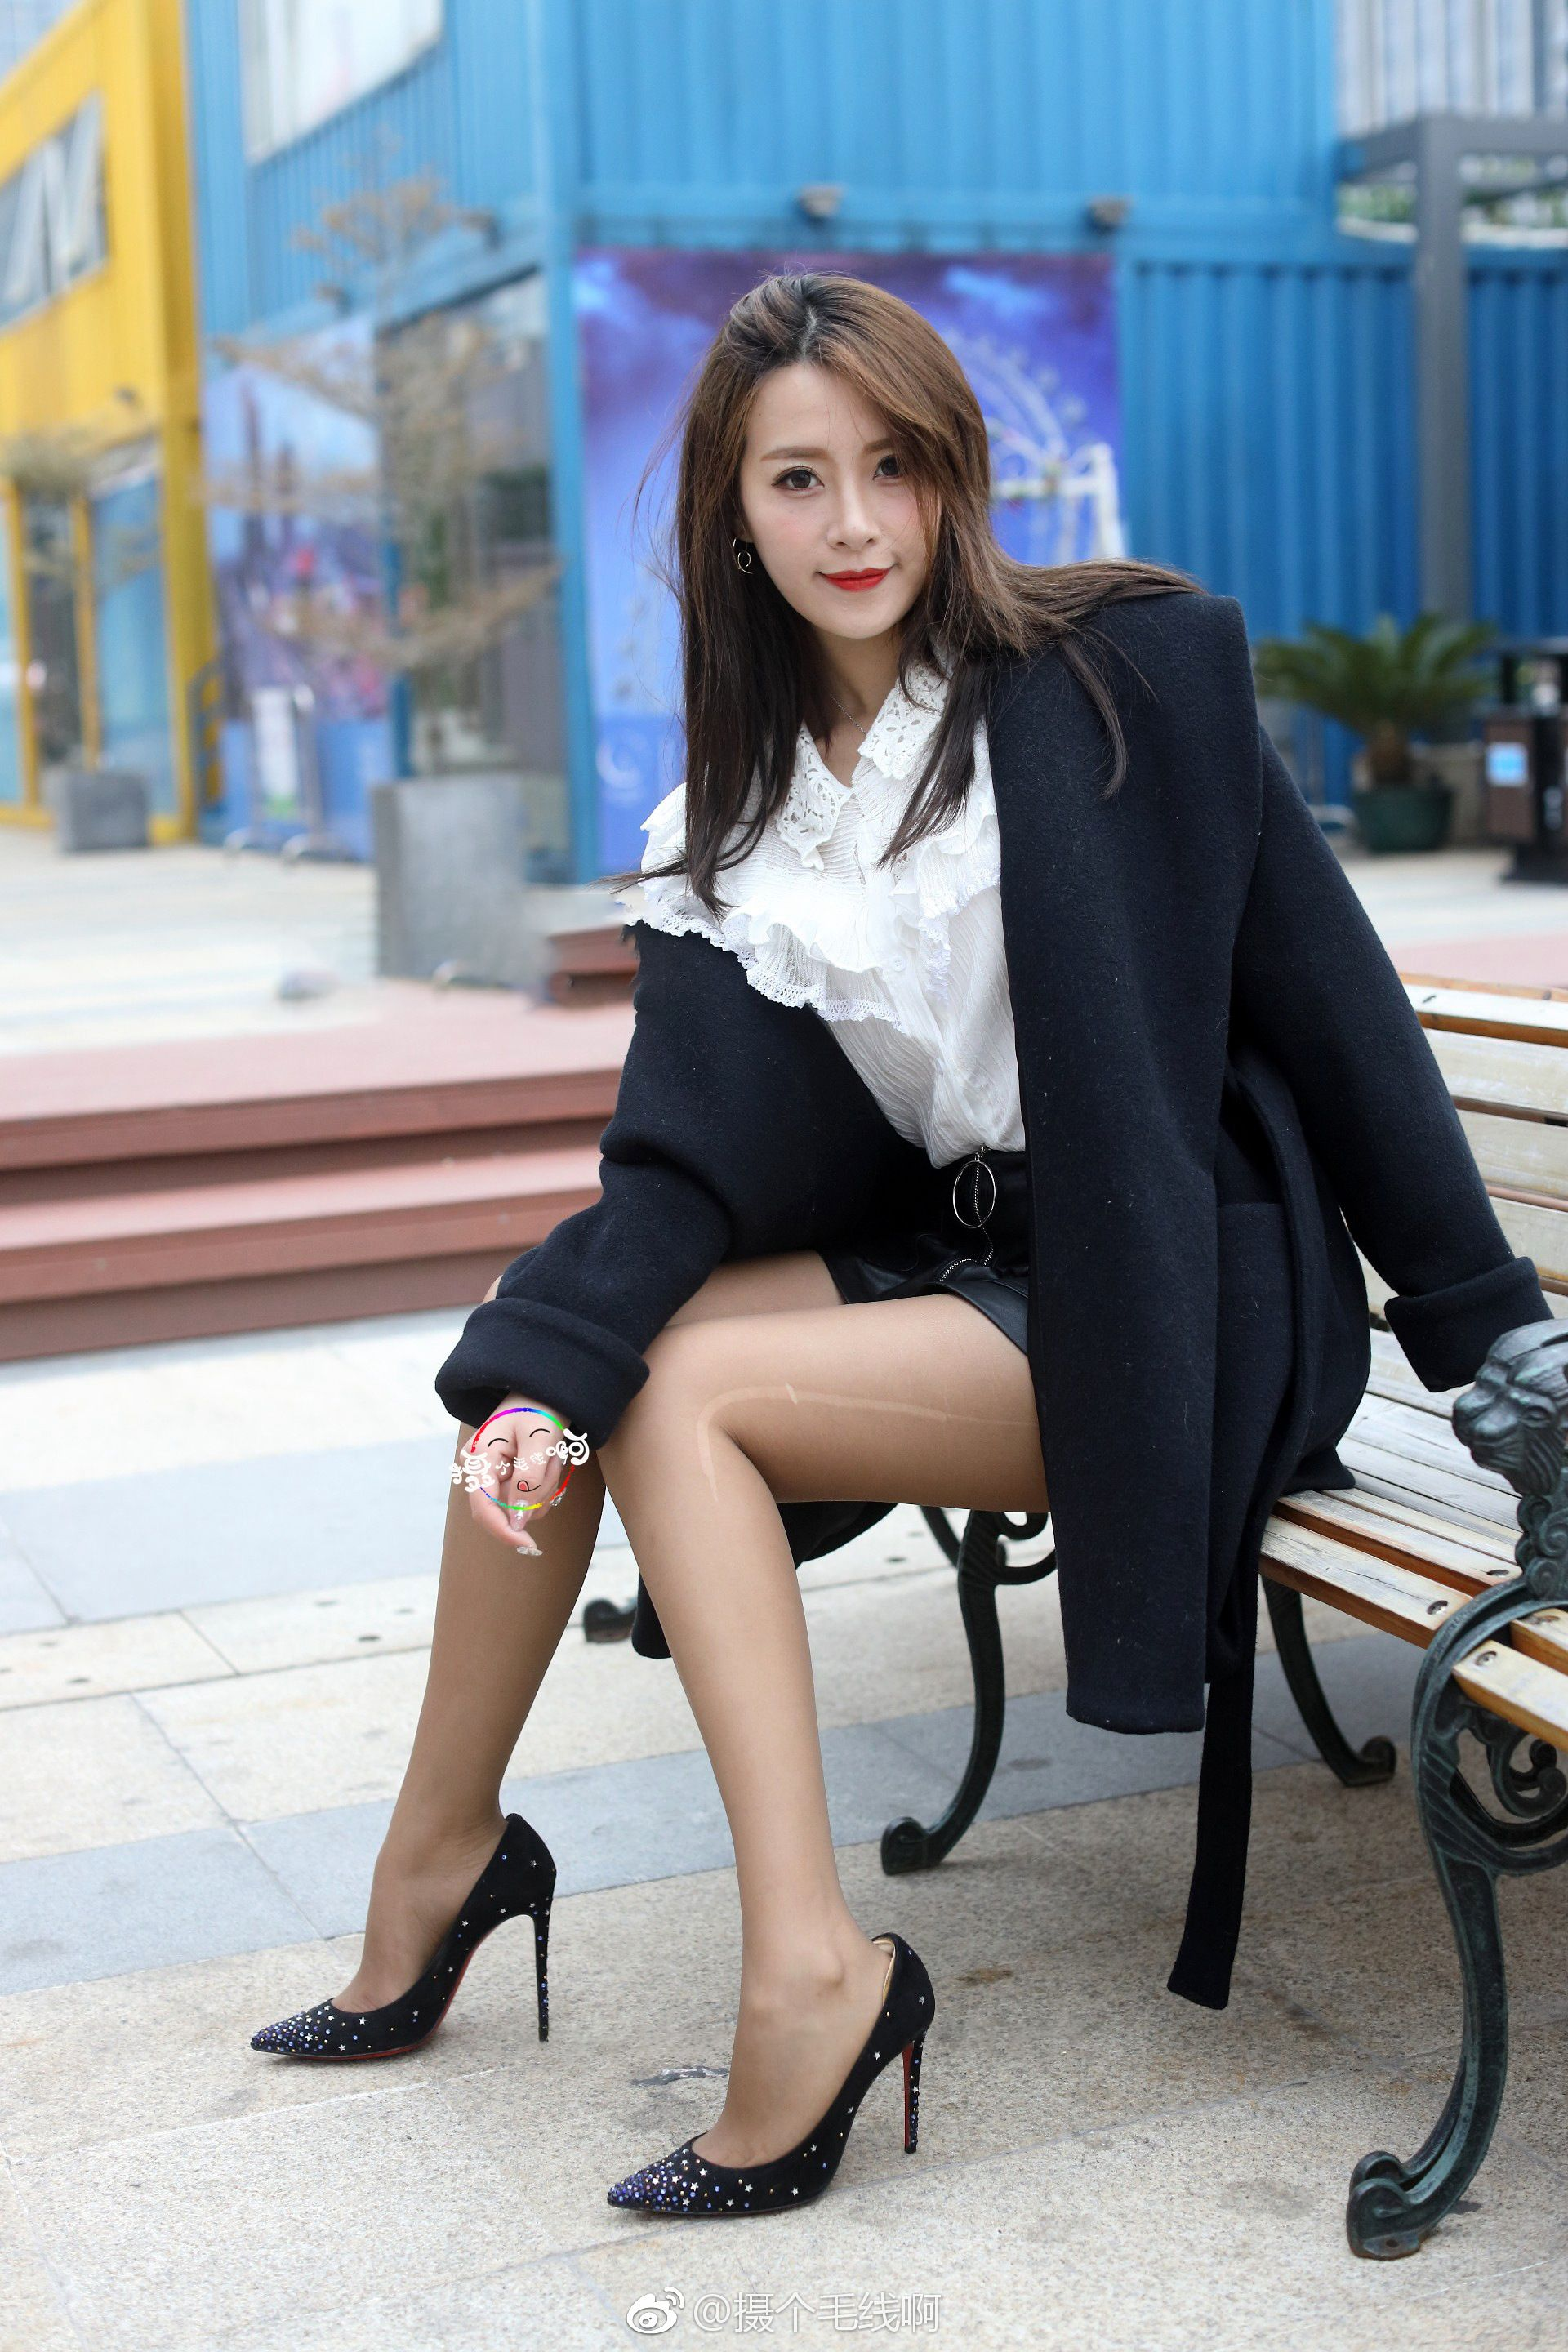 Nice Korean girl in pantyhose - More pictures here: http